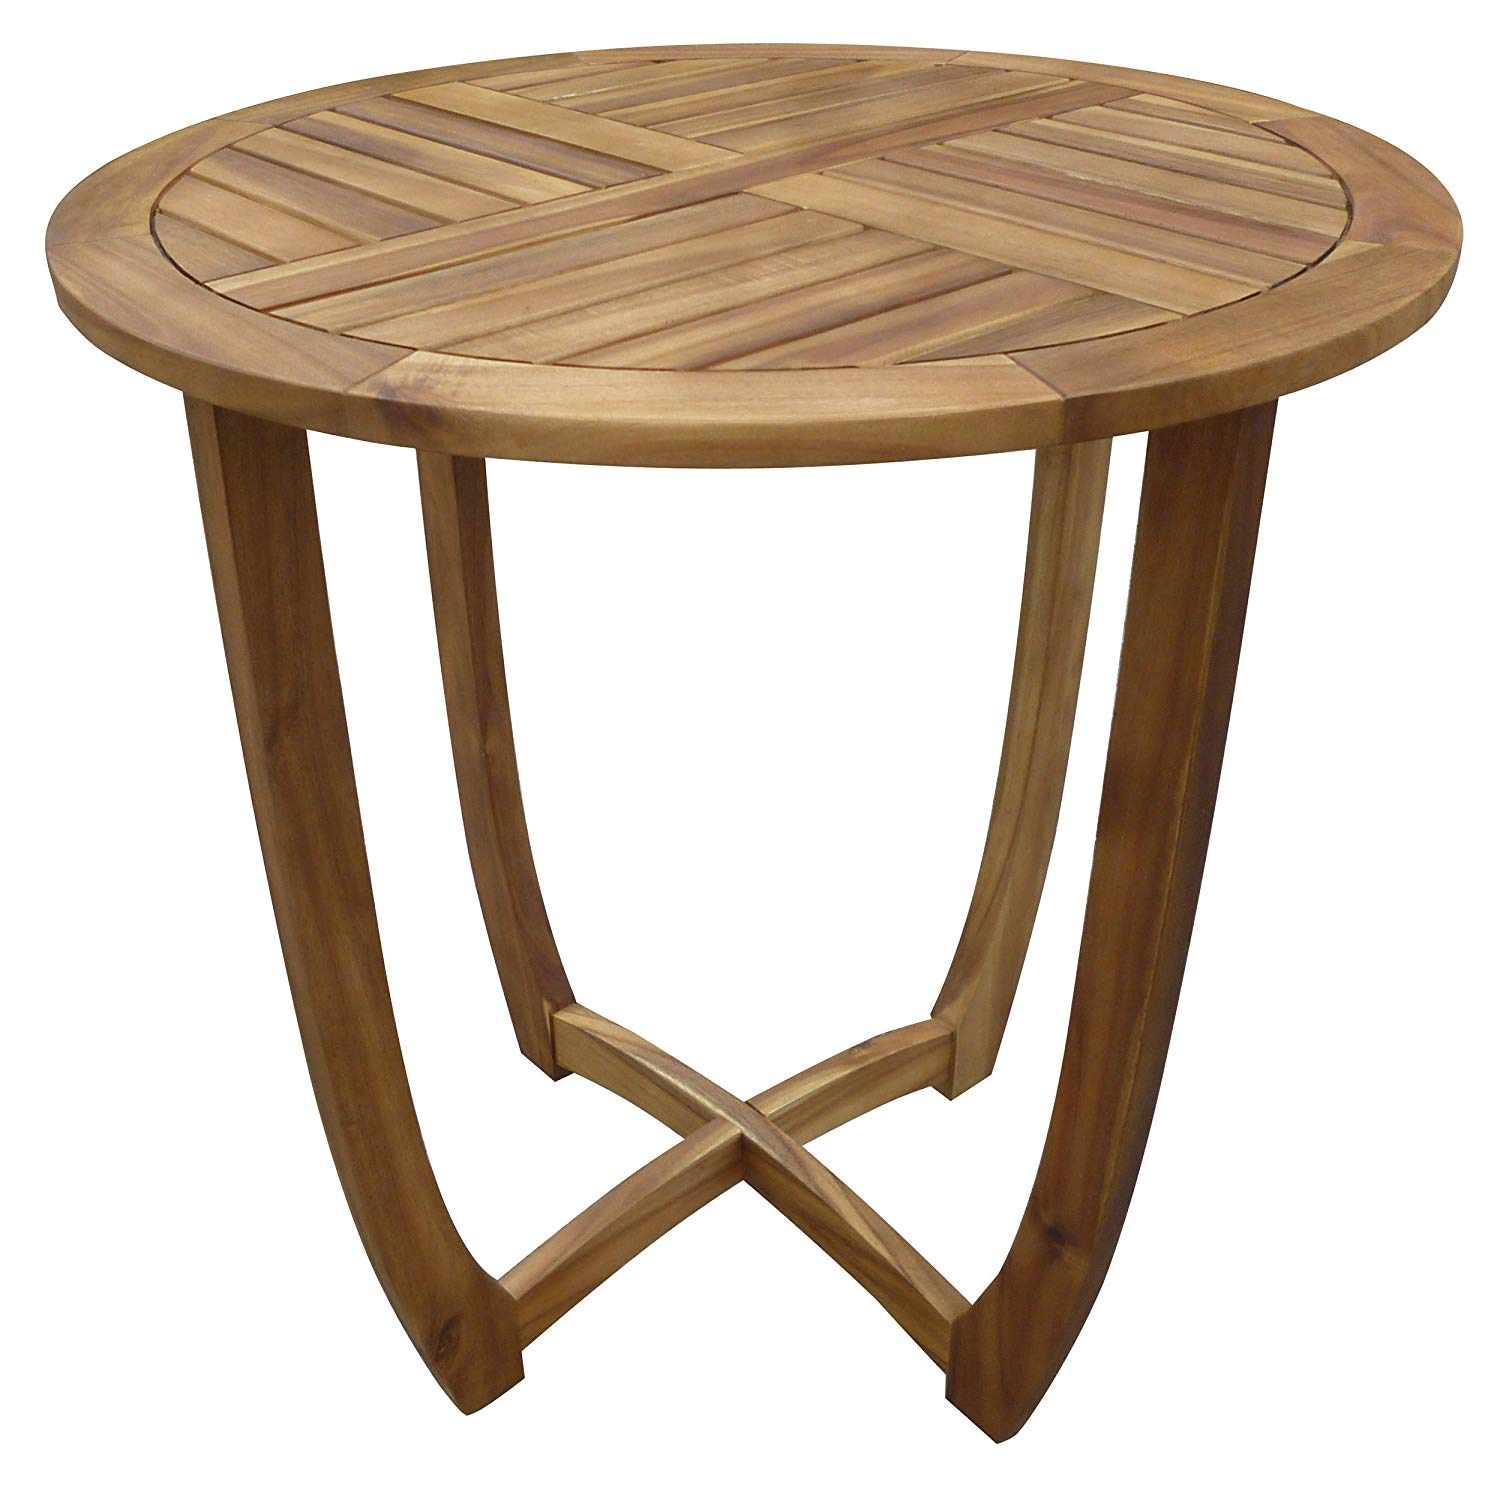 great furniture navarro round wood outdoor oak accent table perfect for patio with teak finish garden next living room side drum green tiffany lamps distressed mirror coffee end